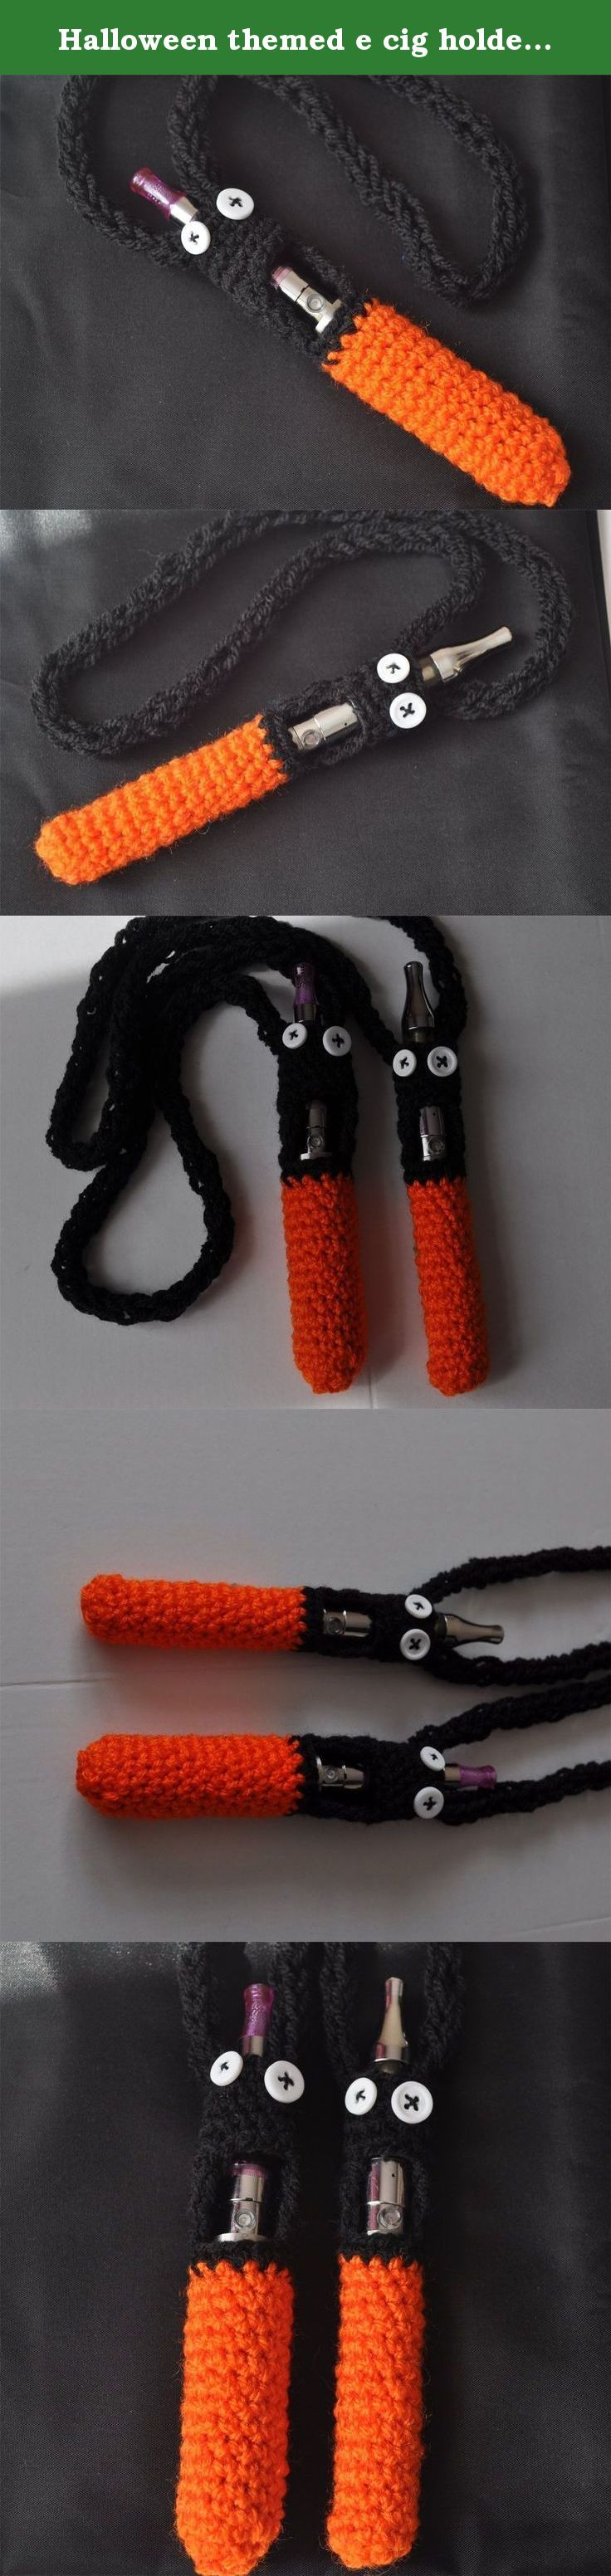 Halloween themed e cig holders, neck sling, vape cover in orange and black, electronic cigarette case. These are Halloween themed e cig case / holders in orange and black with buttons sewn in as eyes. You can celebrate halloween with these scared looking creatures! This is great to use for your electronic cigarette or vaporiser pen. This neck sling is easy to throw over your head and go. The lanyard also makes it easy to find your vape pen in your bag or purse. This vape cover would also…